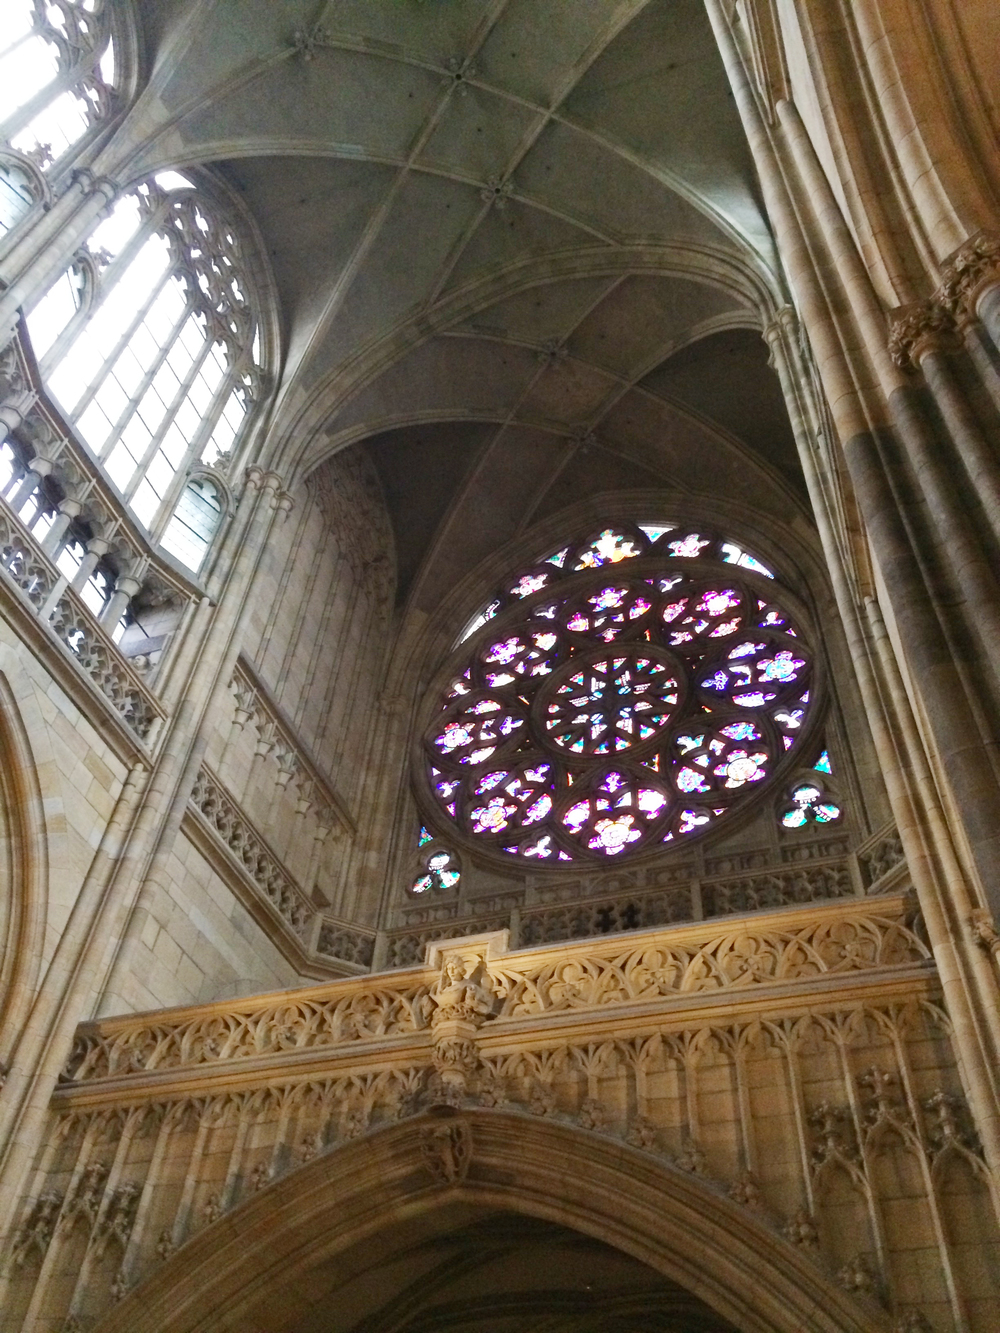 Love this rose window.